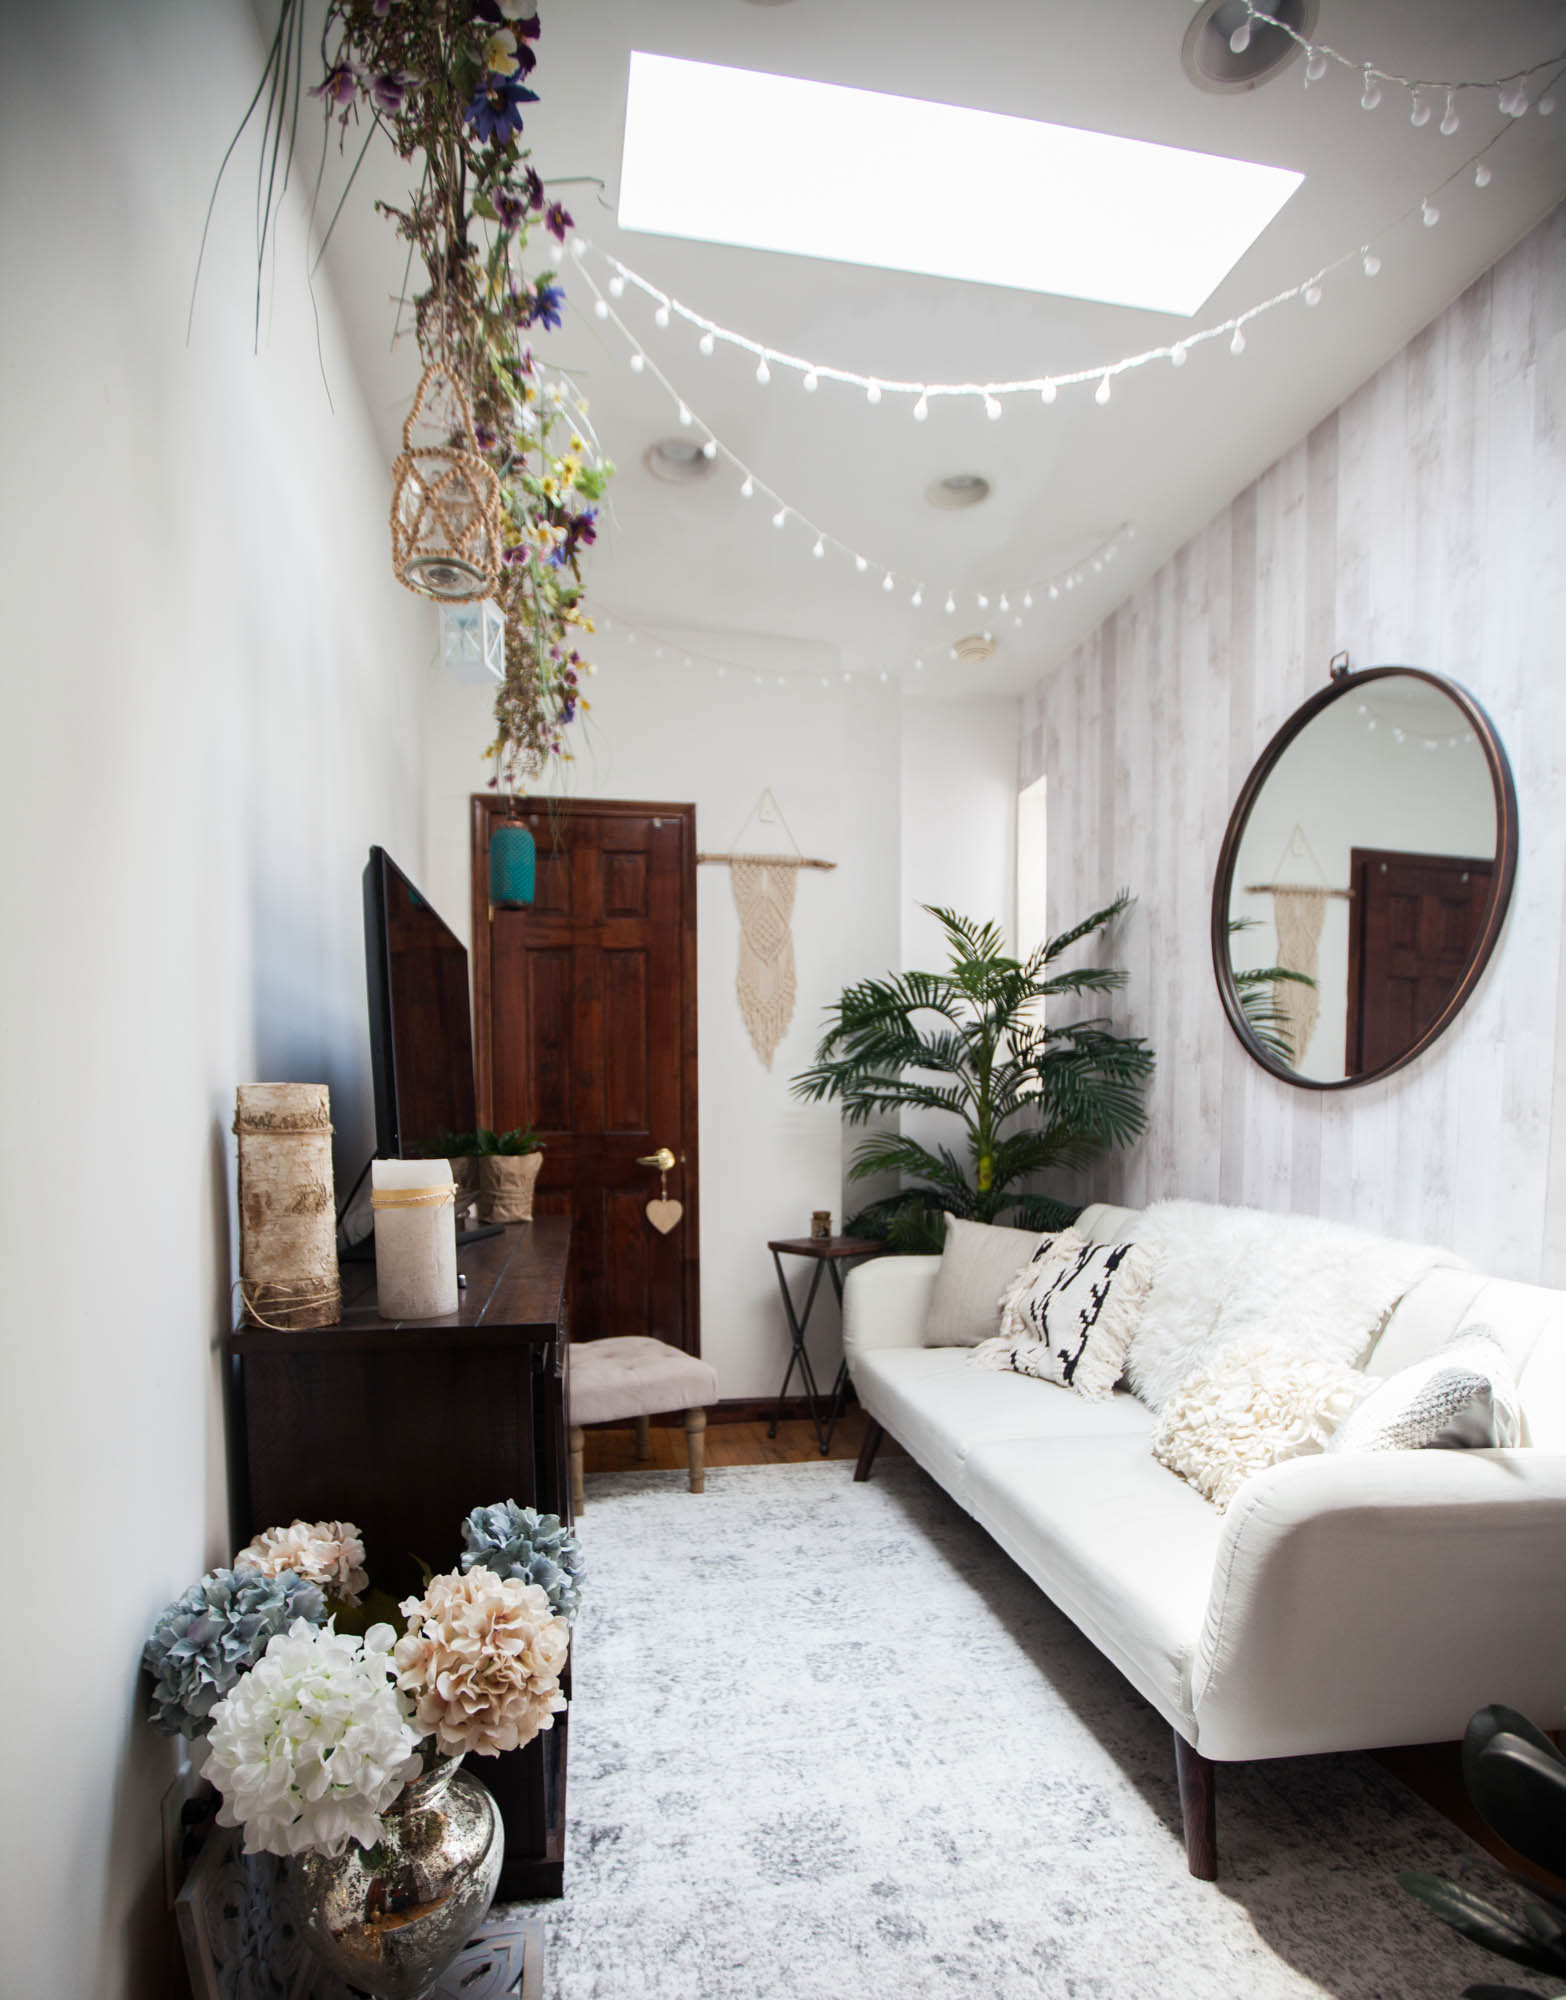 10 Small Living Room Decorating & Design Ideas - How to Decorate a